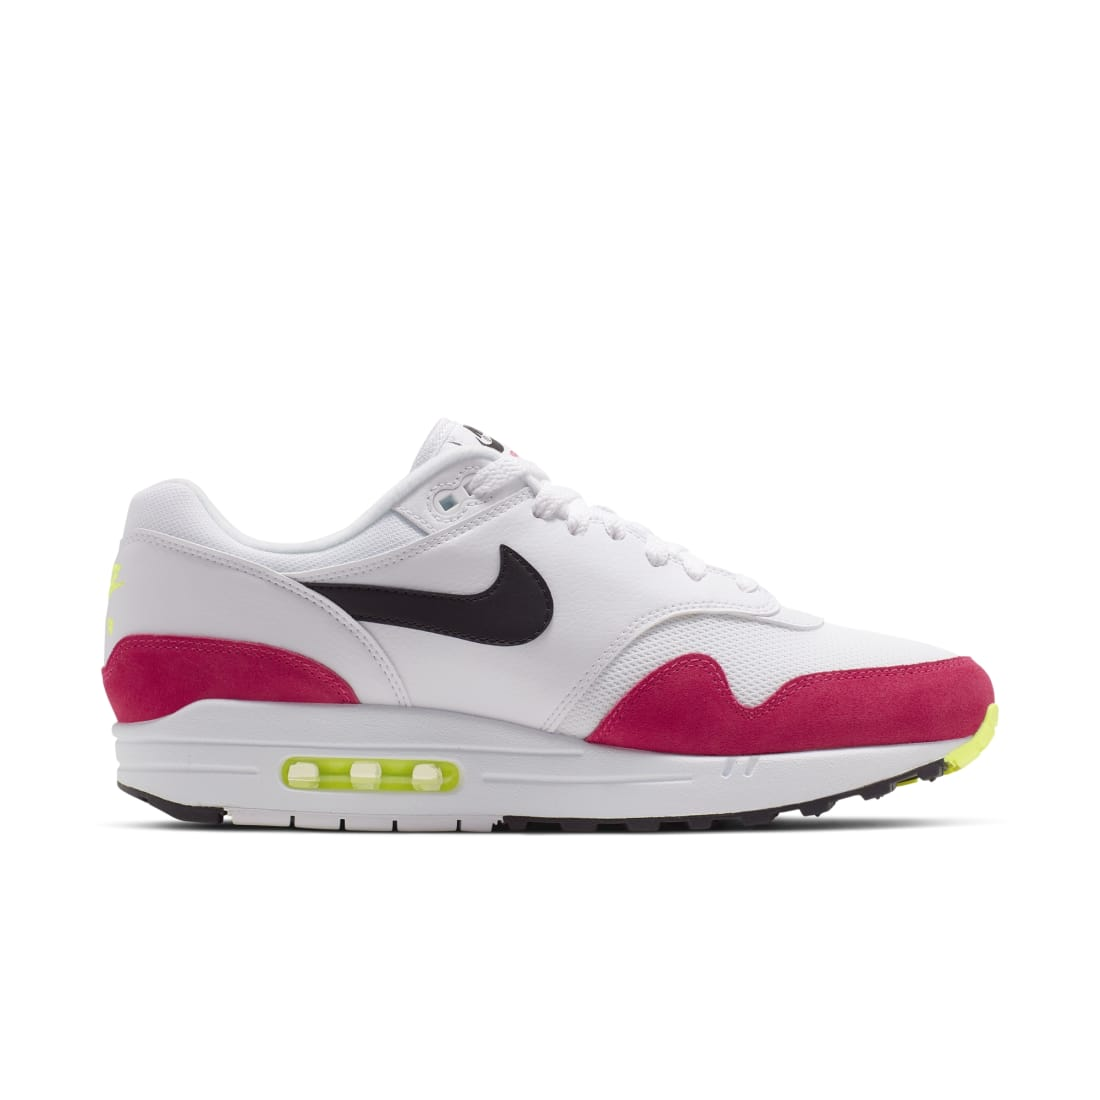 Nike Air Max 1 White Black Volt Rush Pink | Nike | Sole Collector